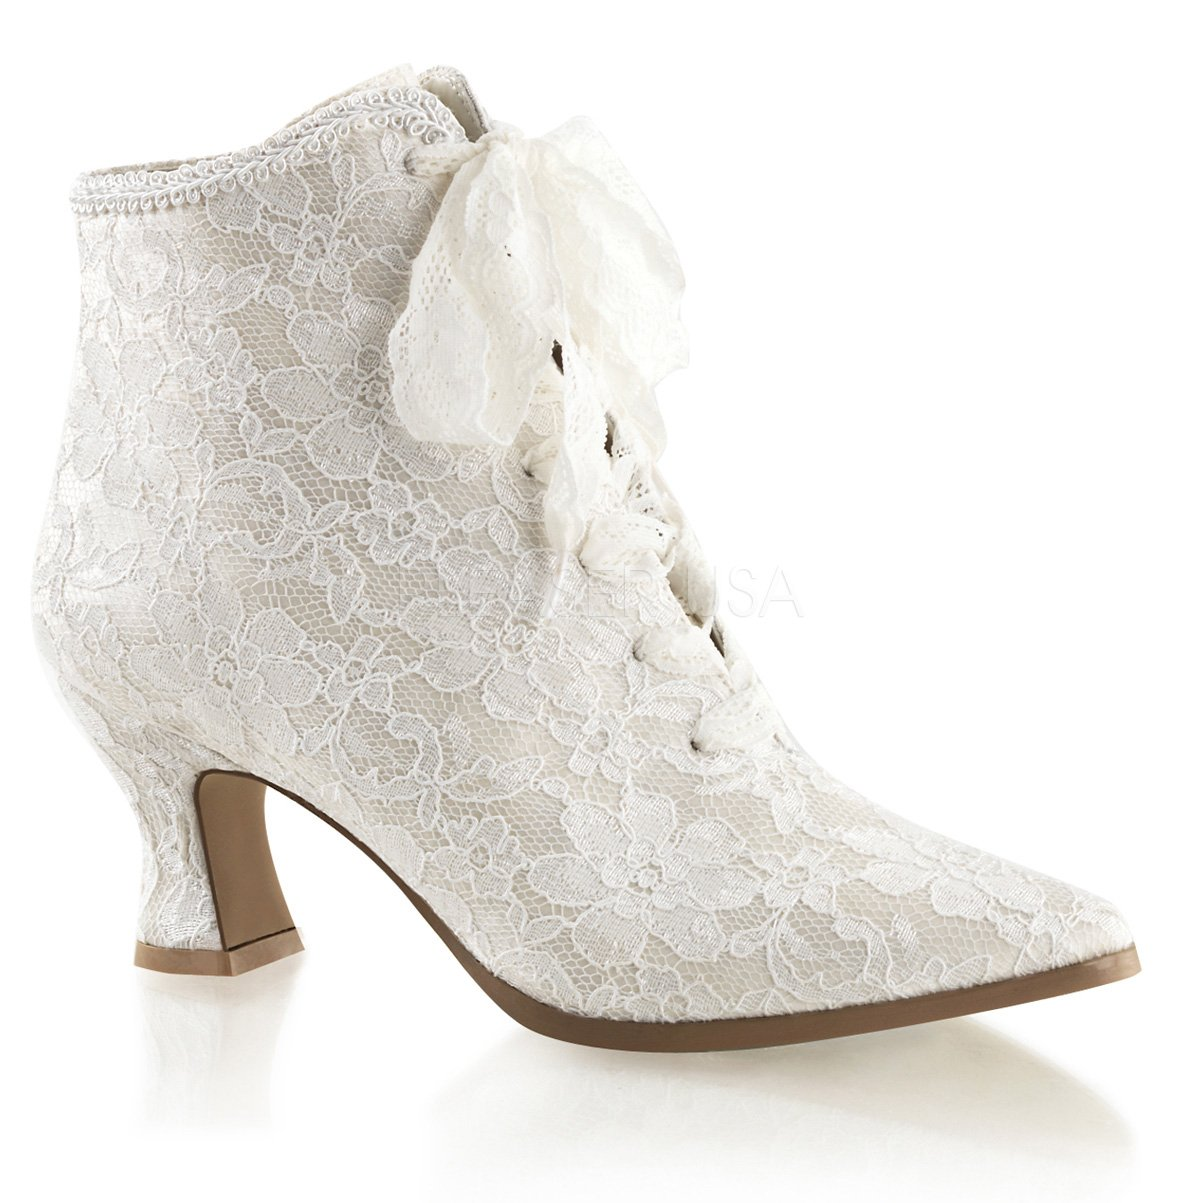 Fabulicious VICTORIAN-30 womens Boots B074F49BD1 6 B(M) US|Ivory Satin-lace